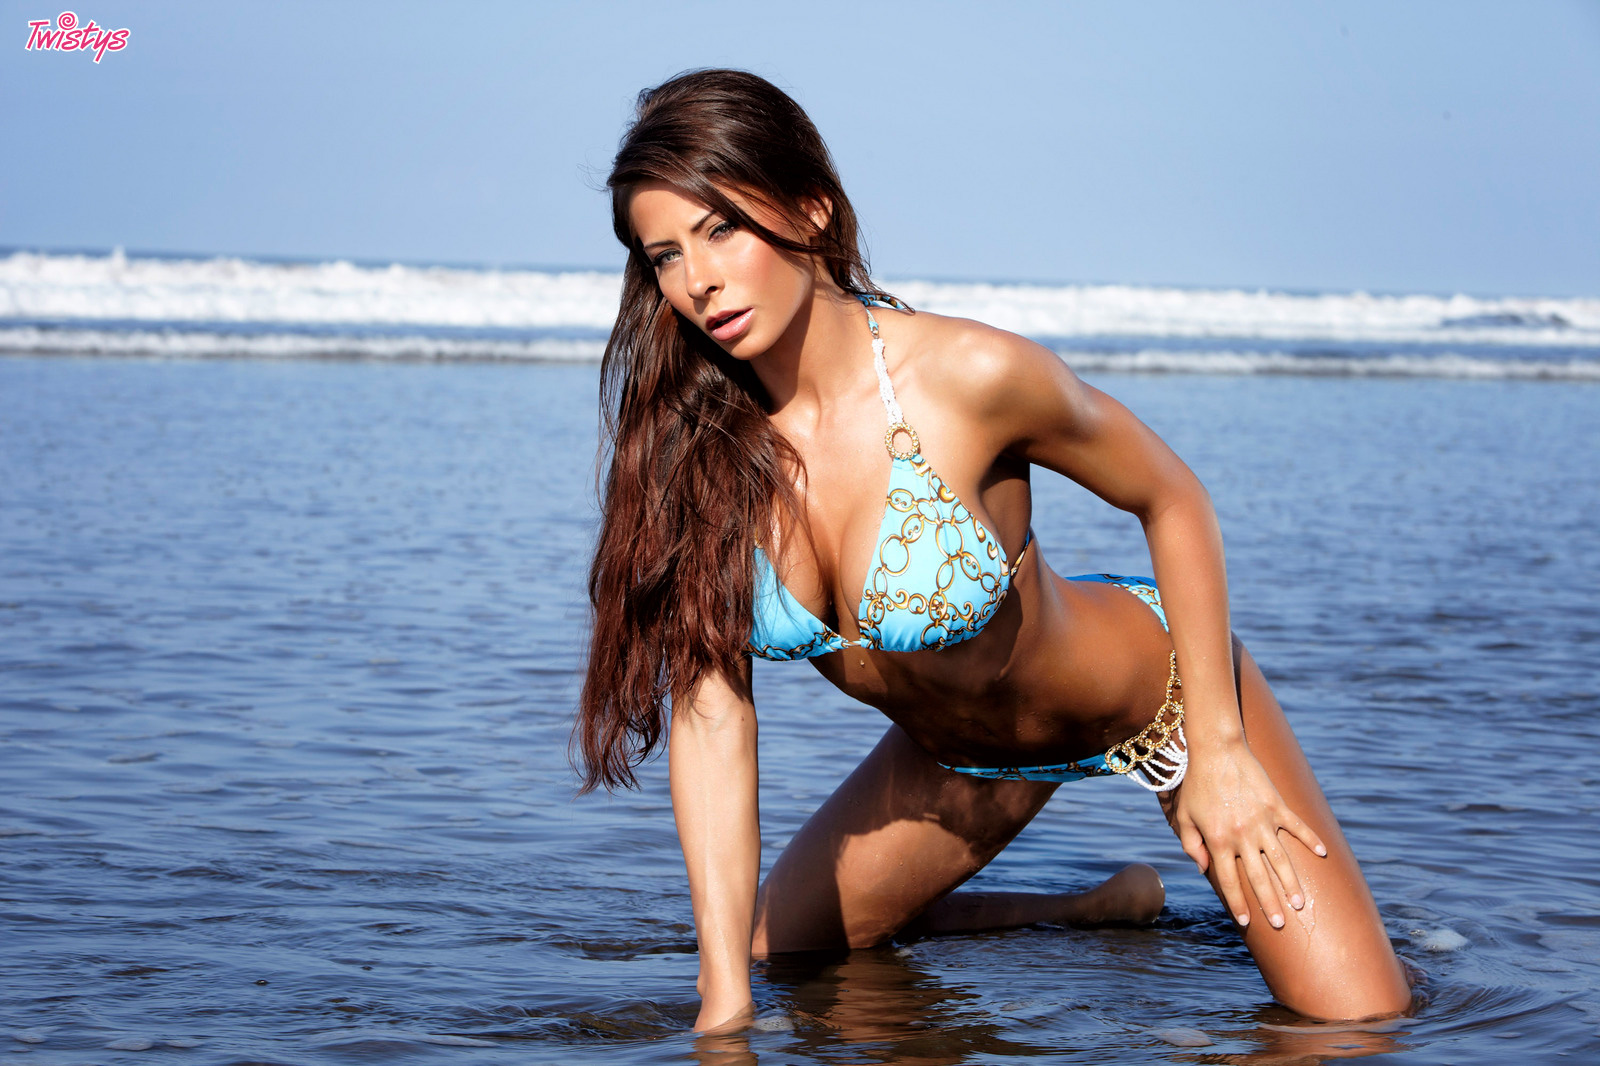 A Vacation To Remember.. featuring Madison Ivy | Twistys.com